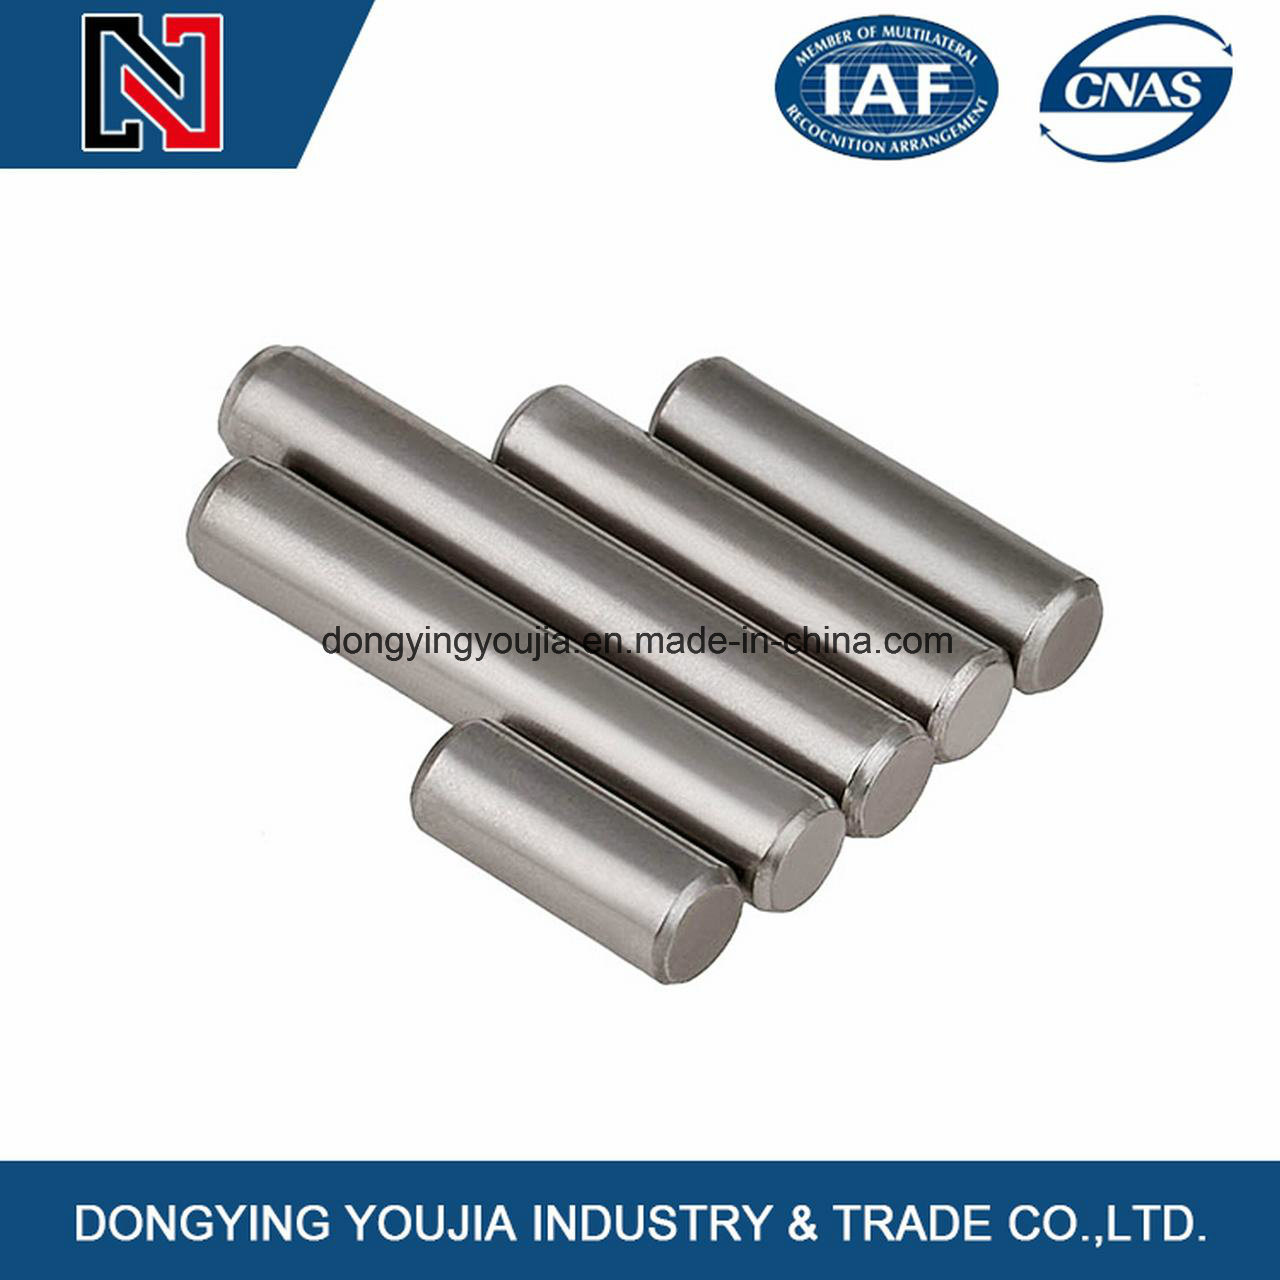 New Highest Quality Cylinder Pin Stainless Steel 316 Parallel Pin